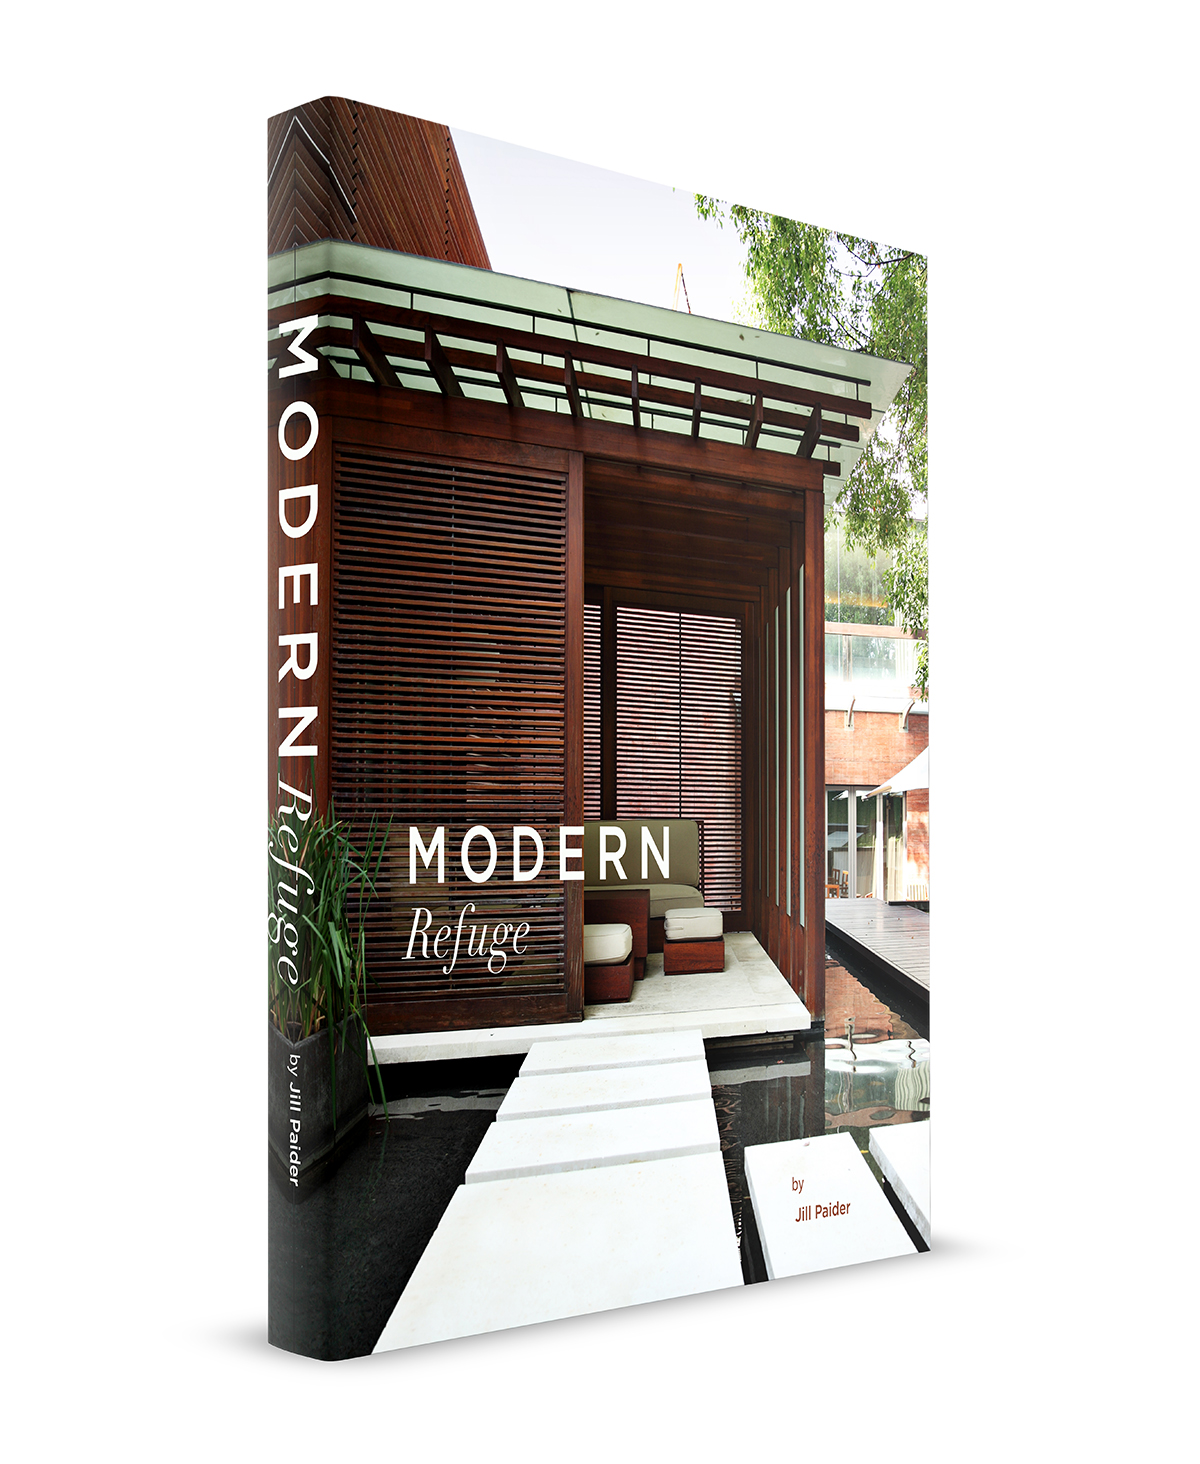 MODERN REFUGE - LIMITED EDITION